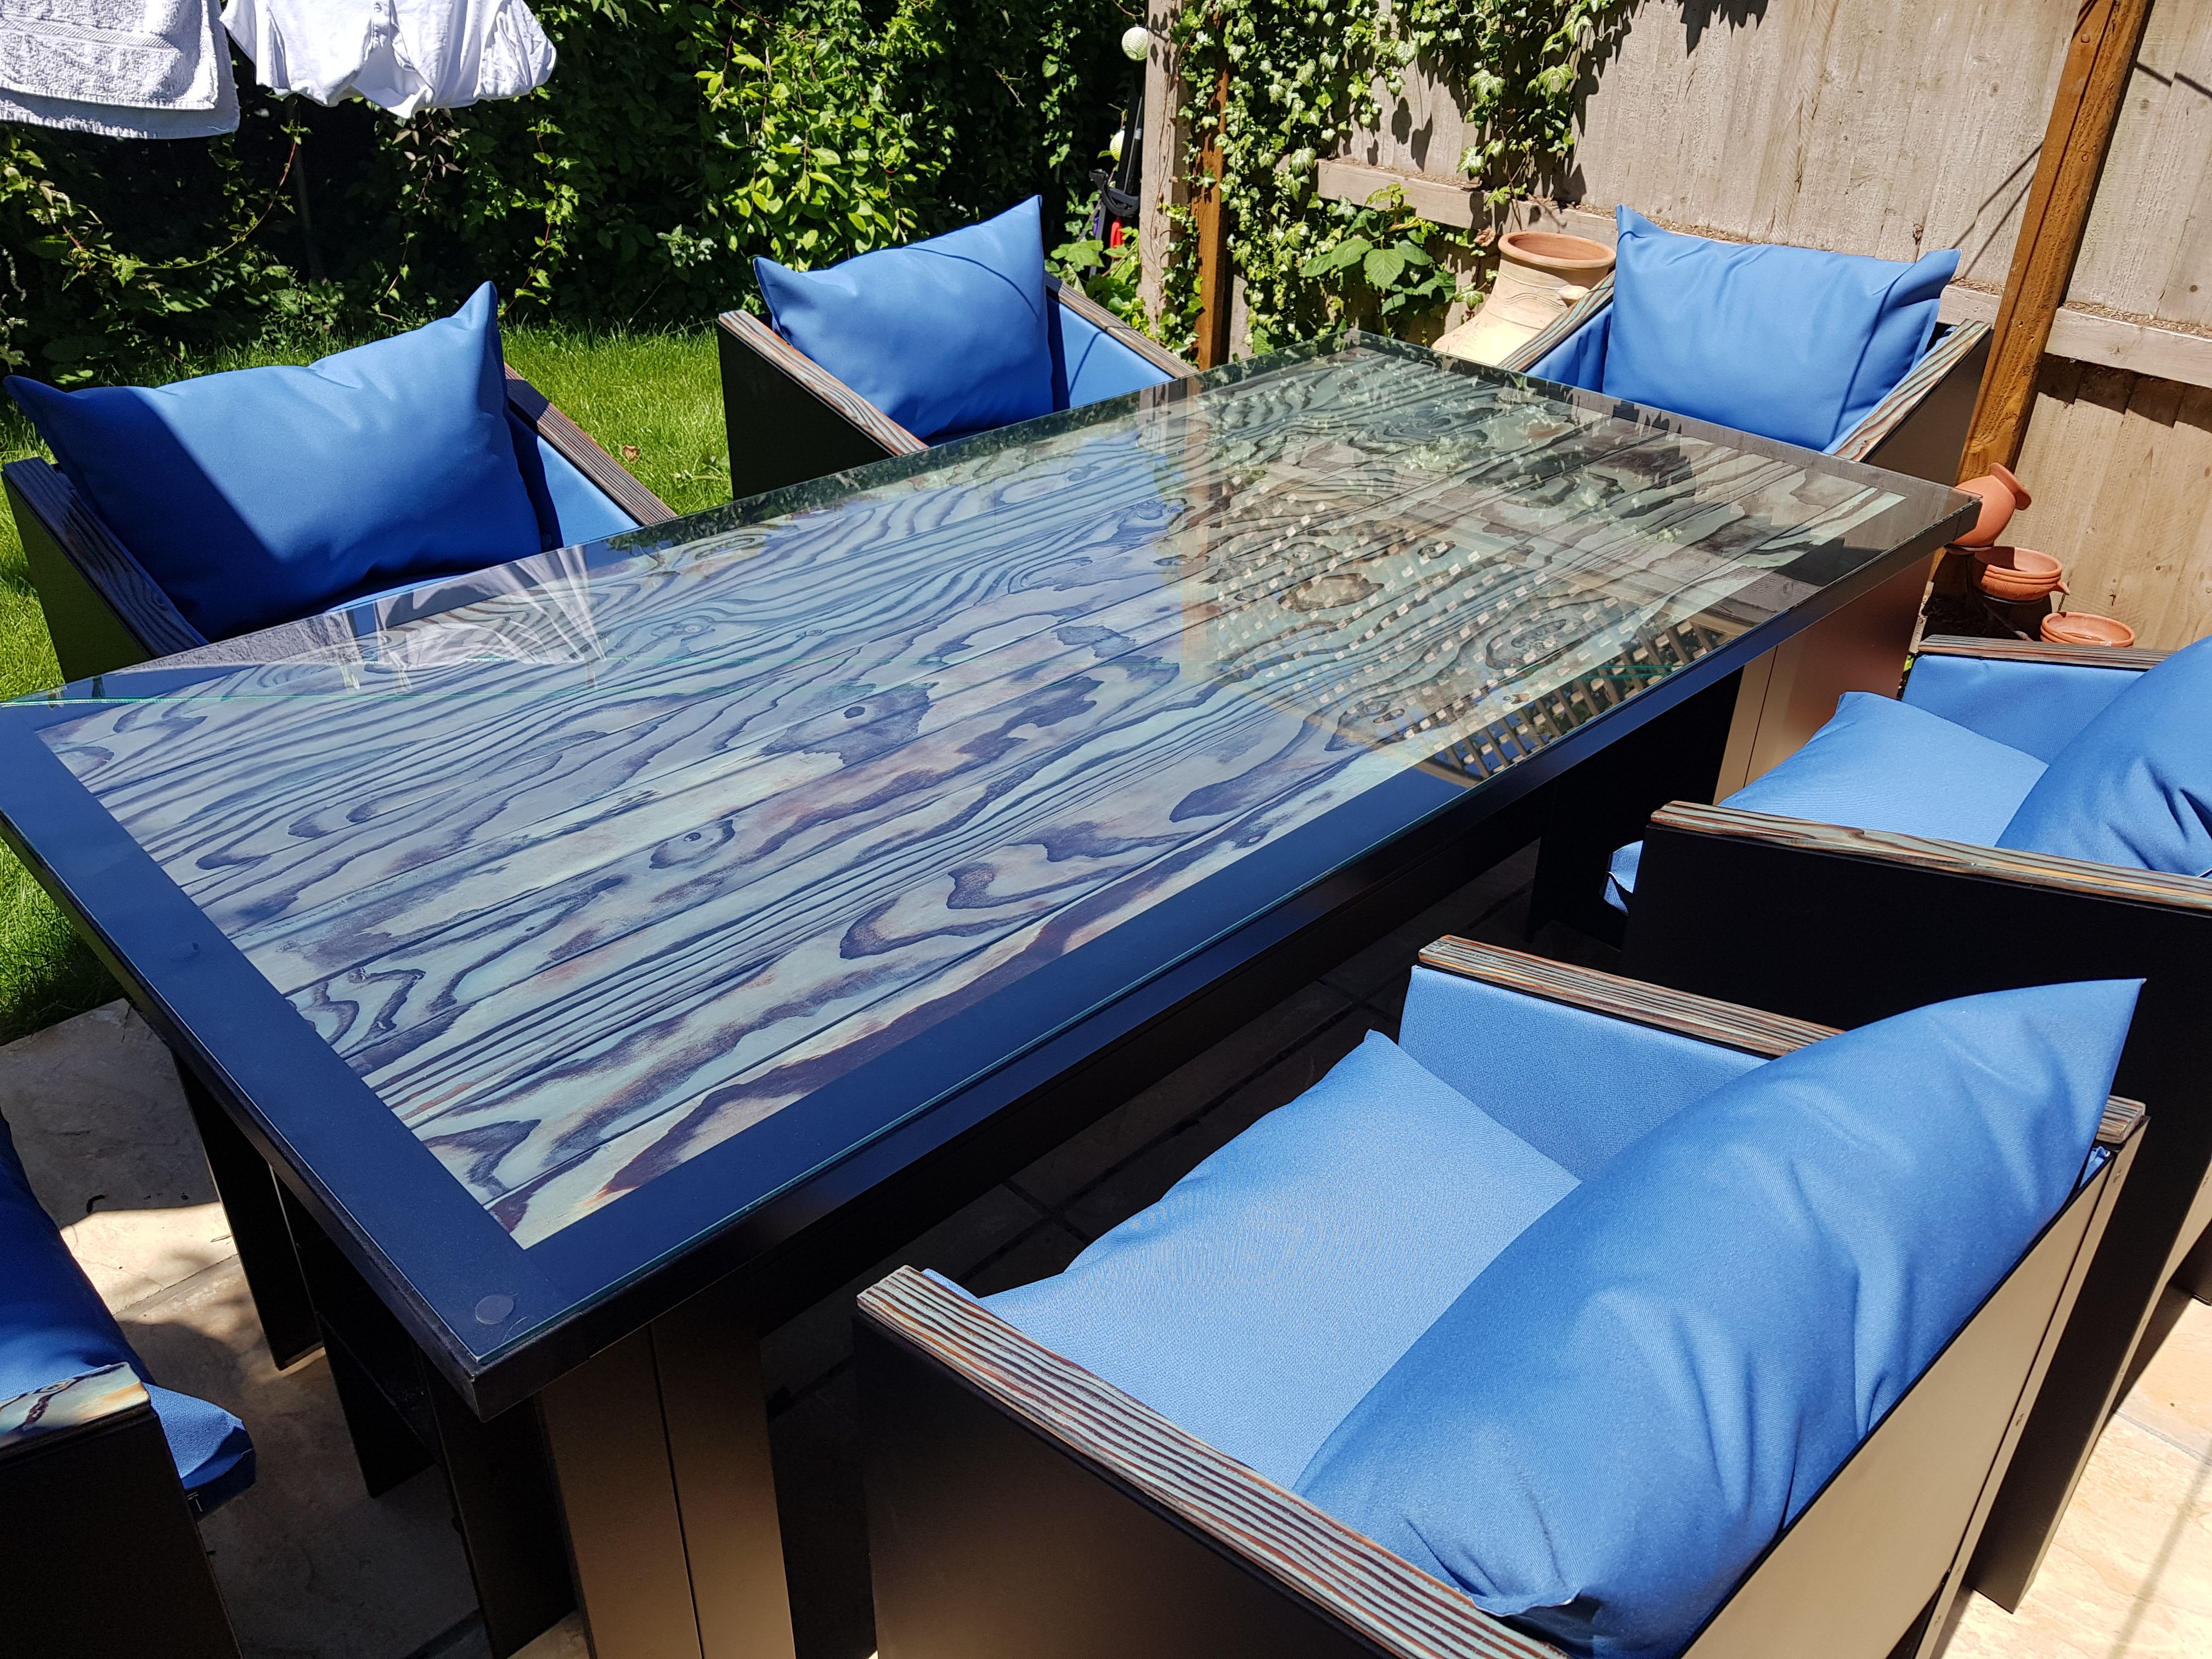 Blue Shou Sugi Ban Industrial Dining Table Used As A